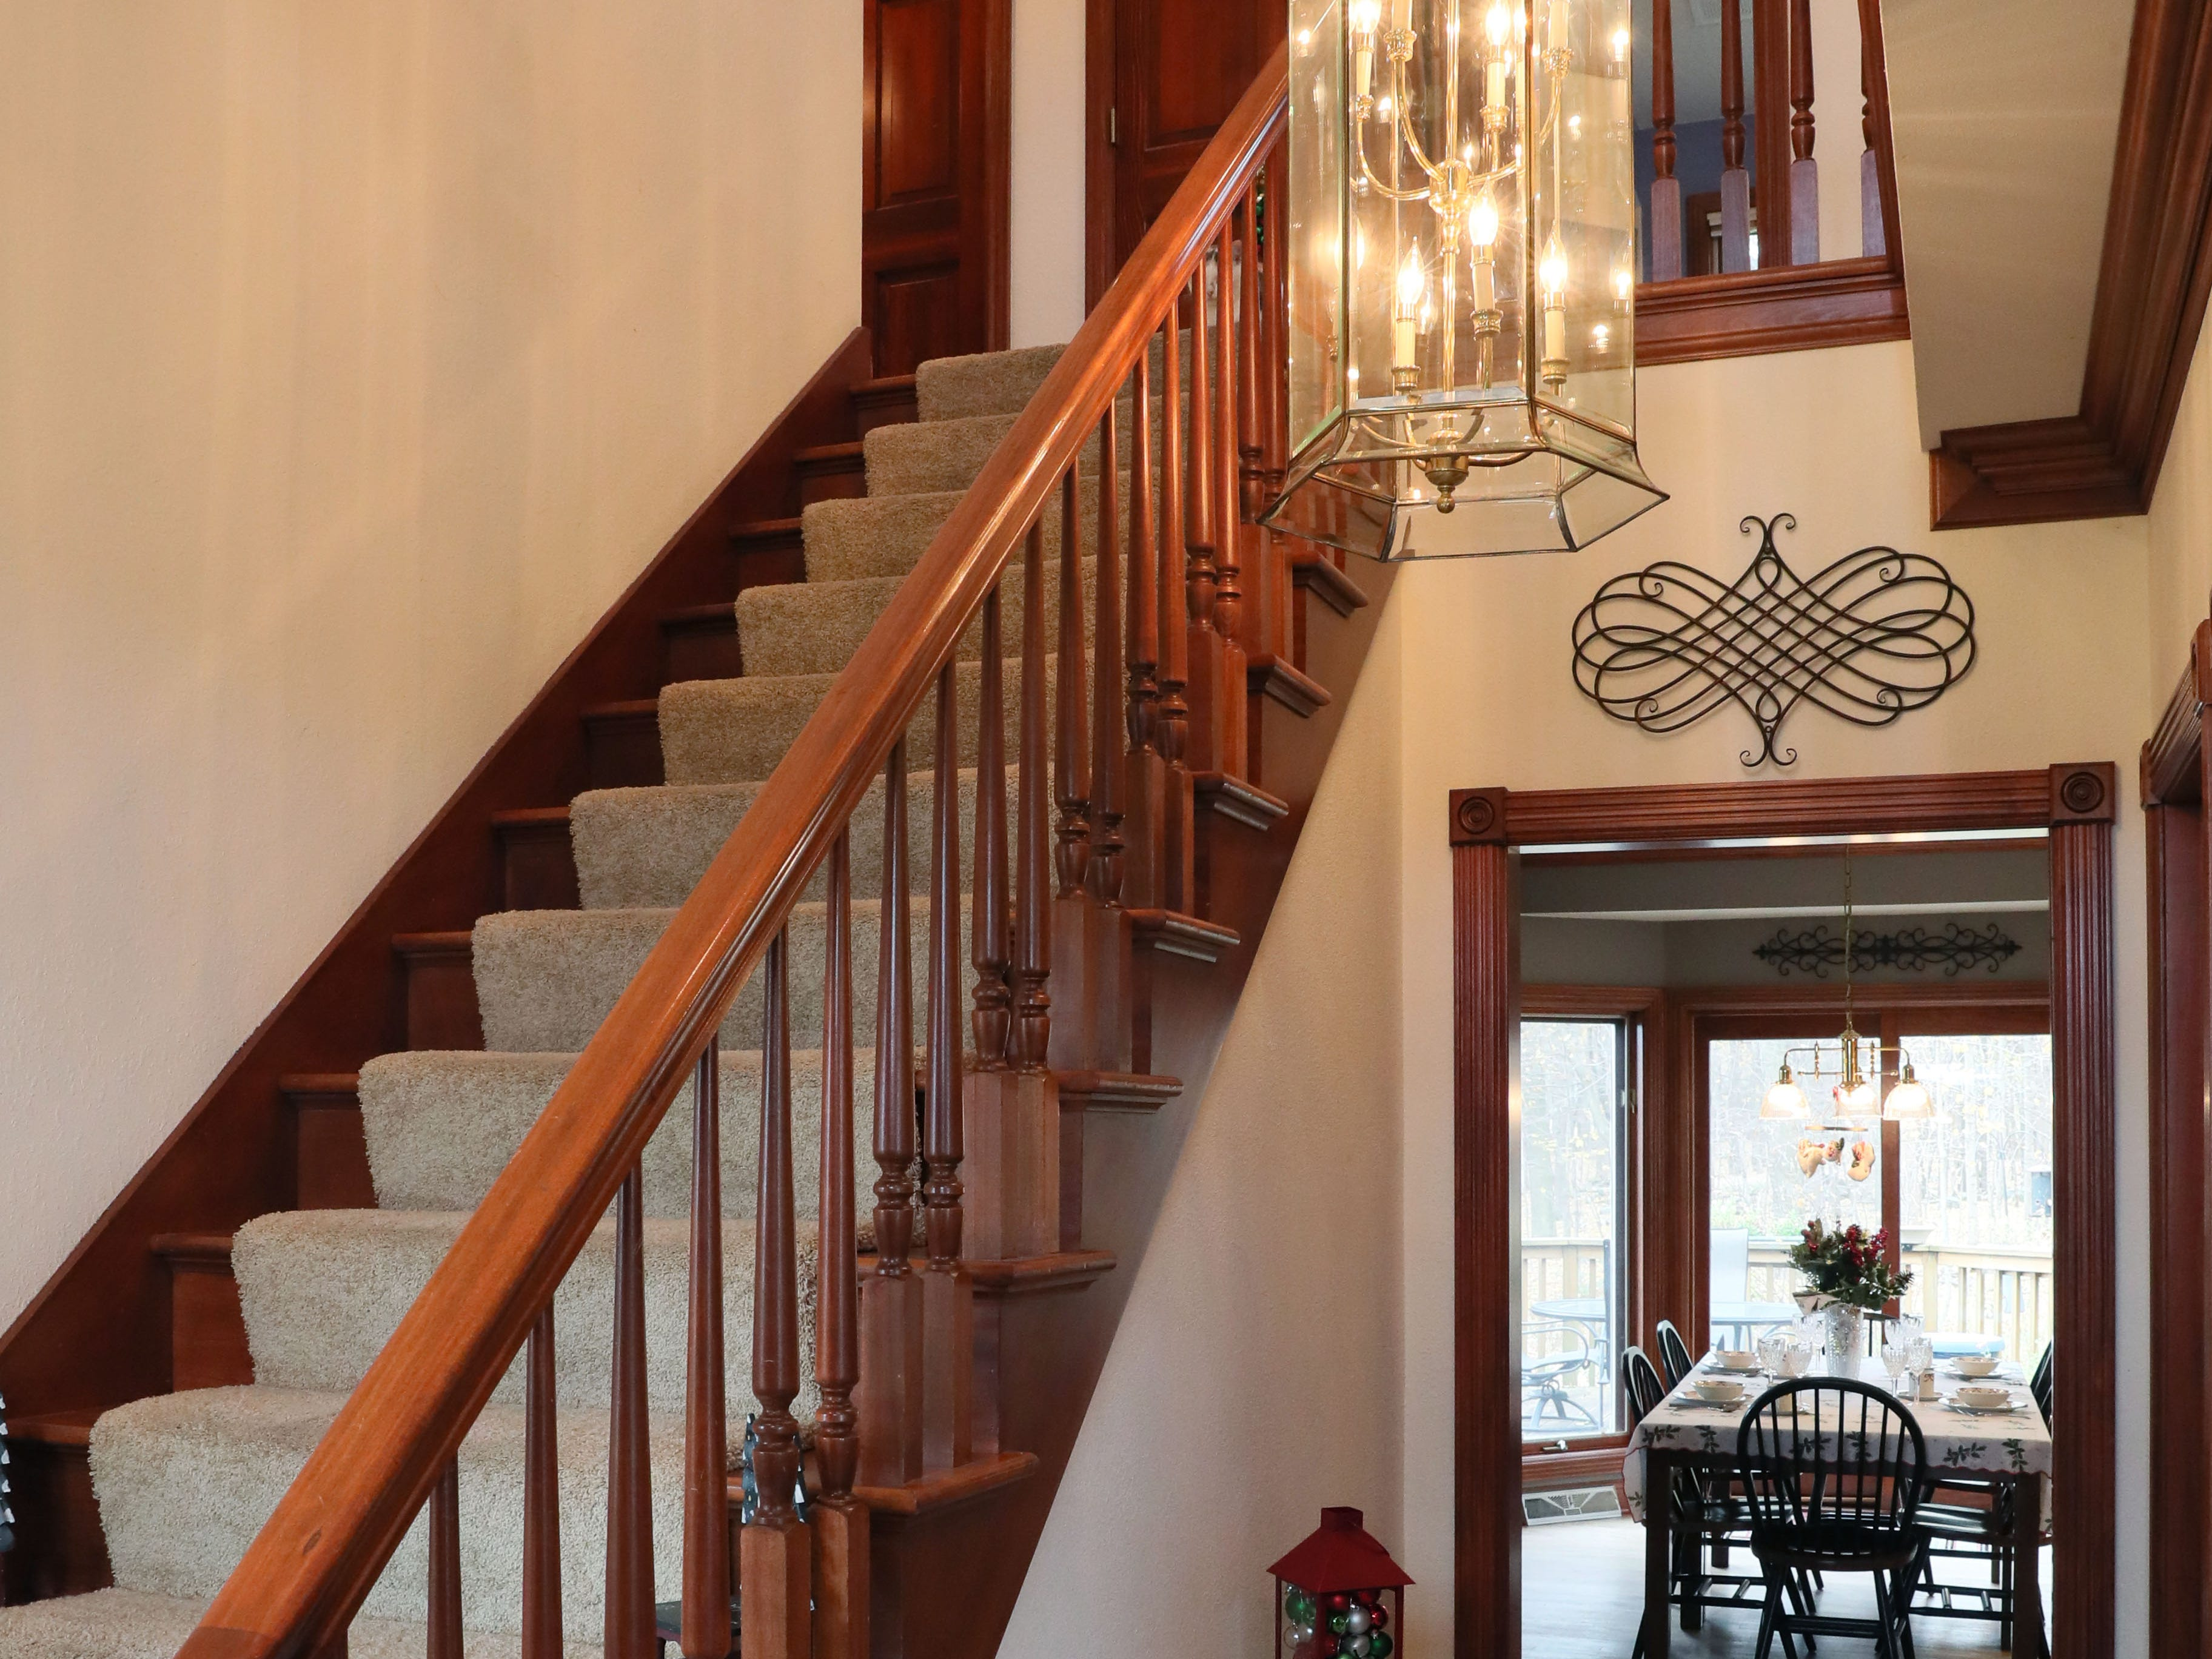 A staircase leads to the second floor of the Town of Erin home.